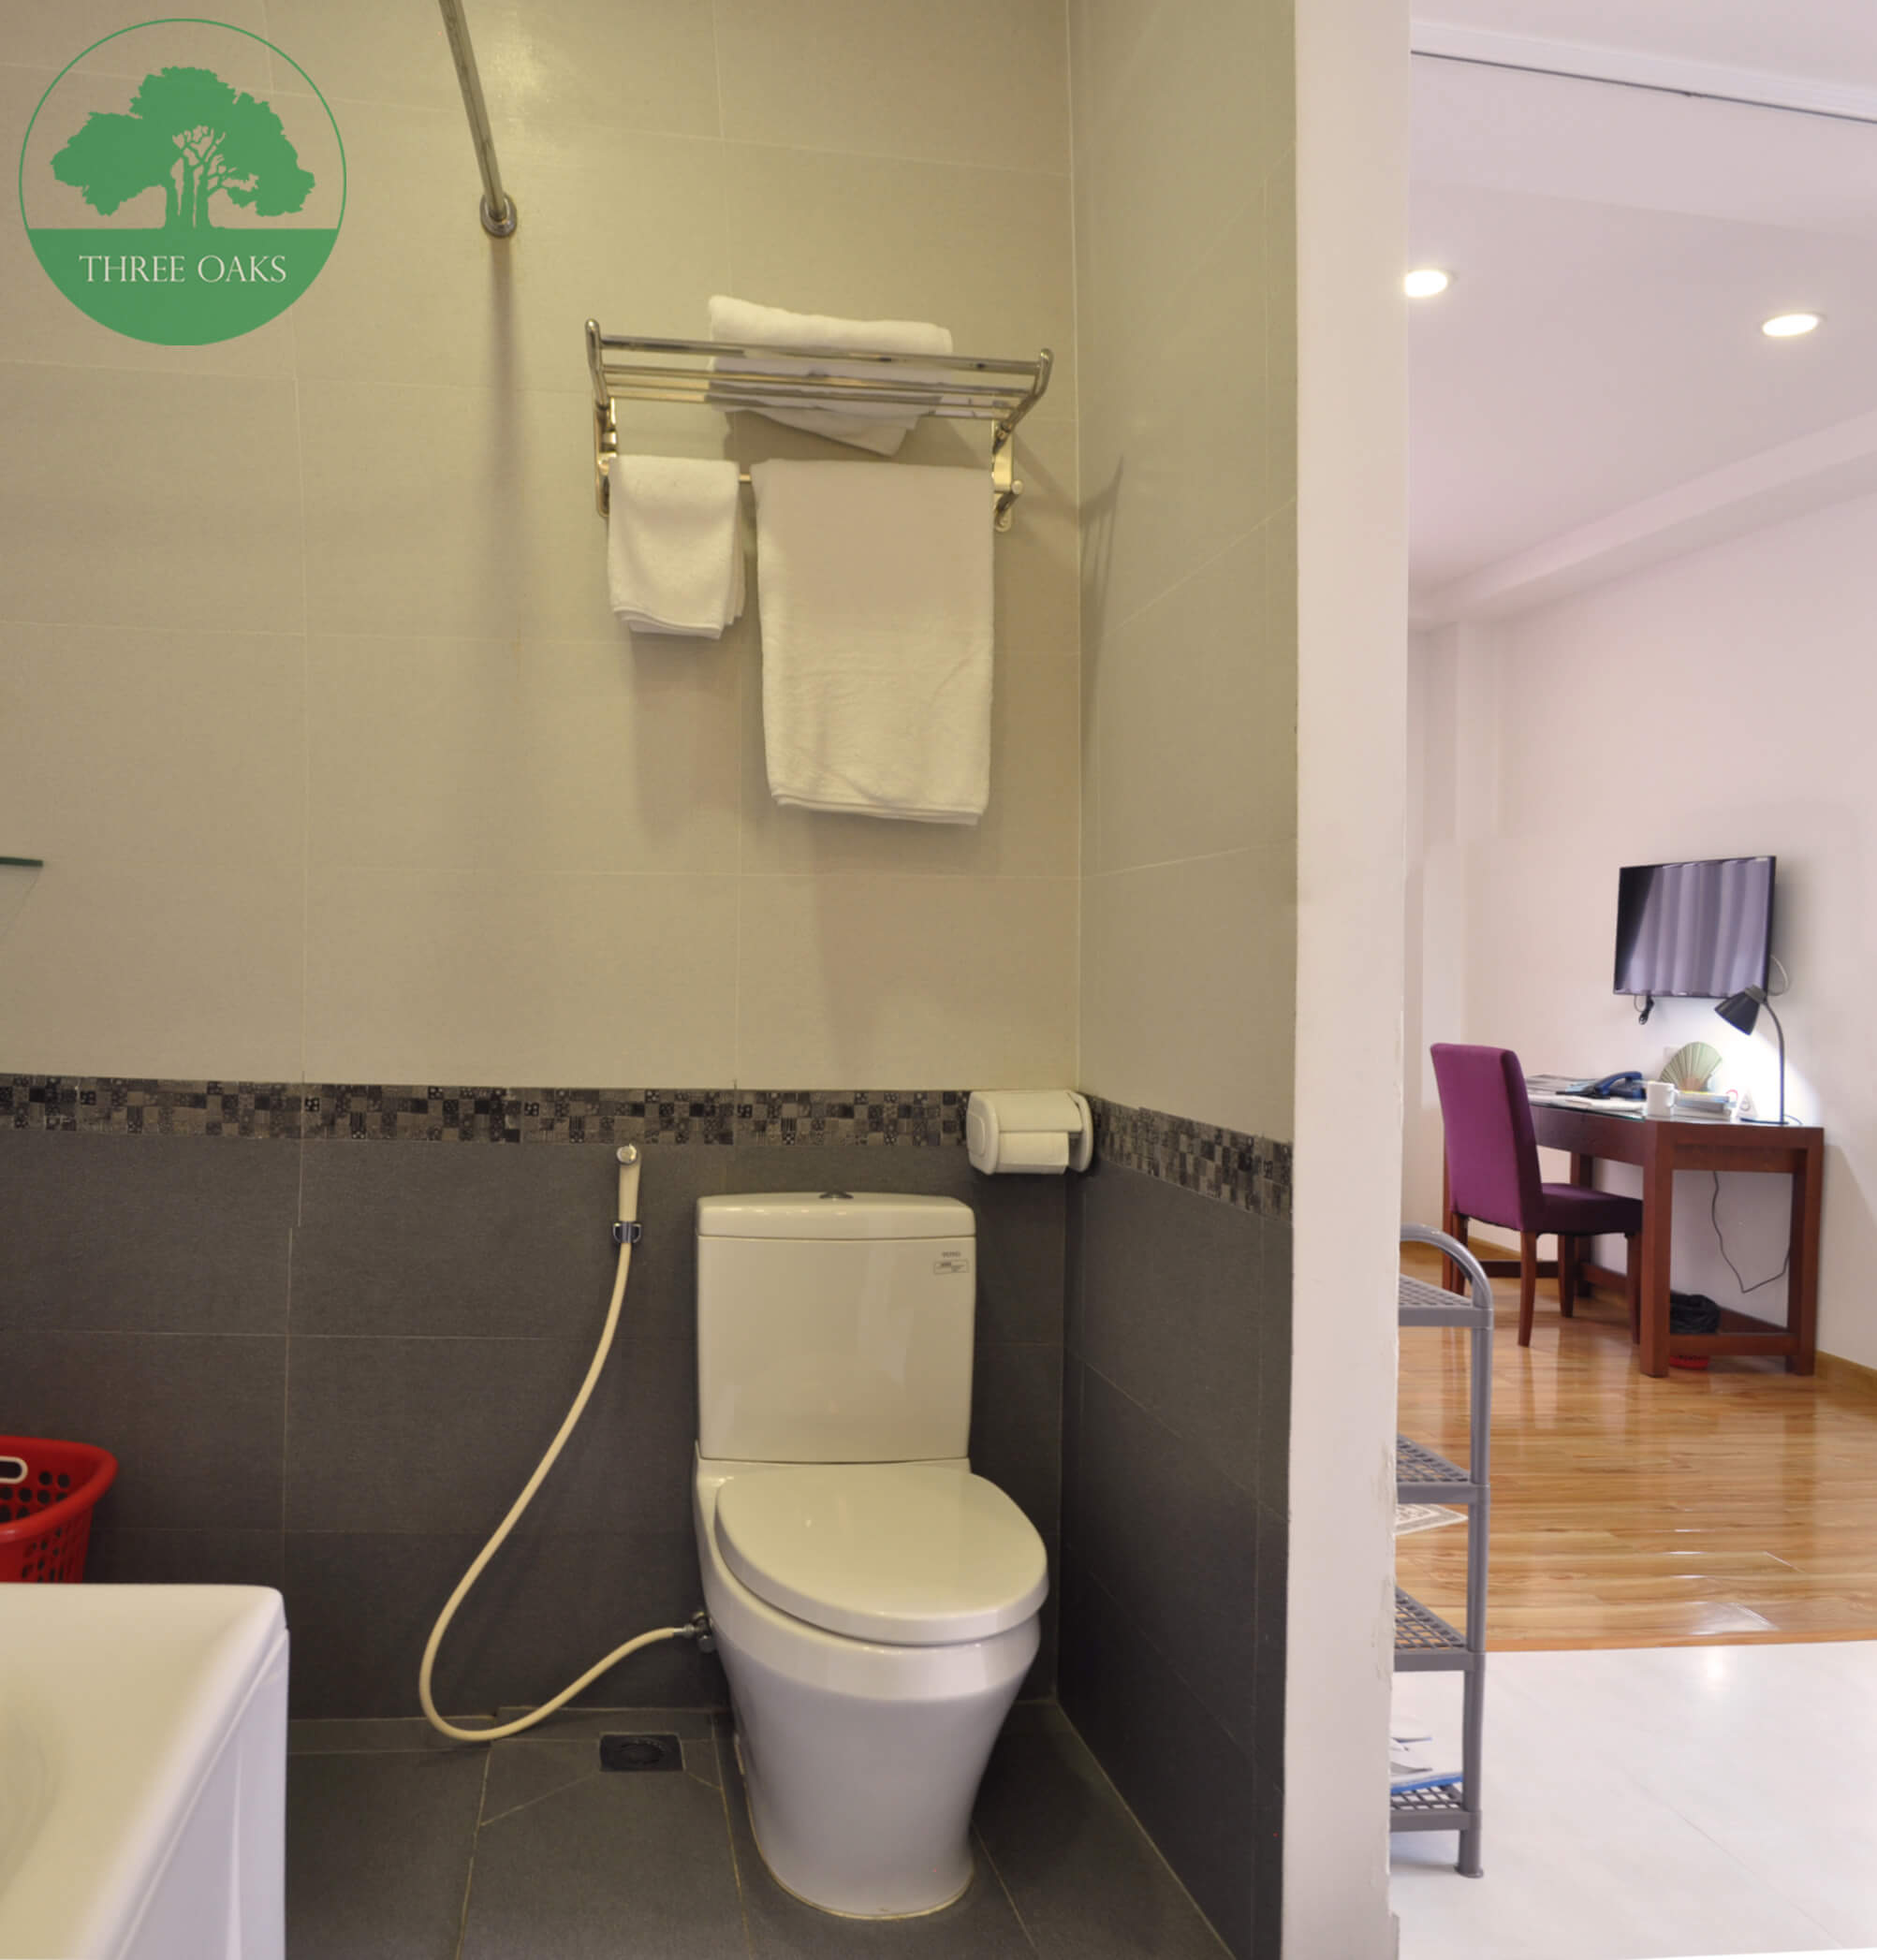 serviced-apartment-in-hcm-three-oaks-2-tybe-a-36